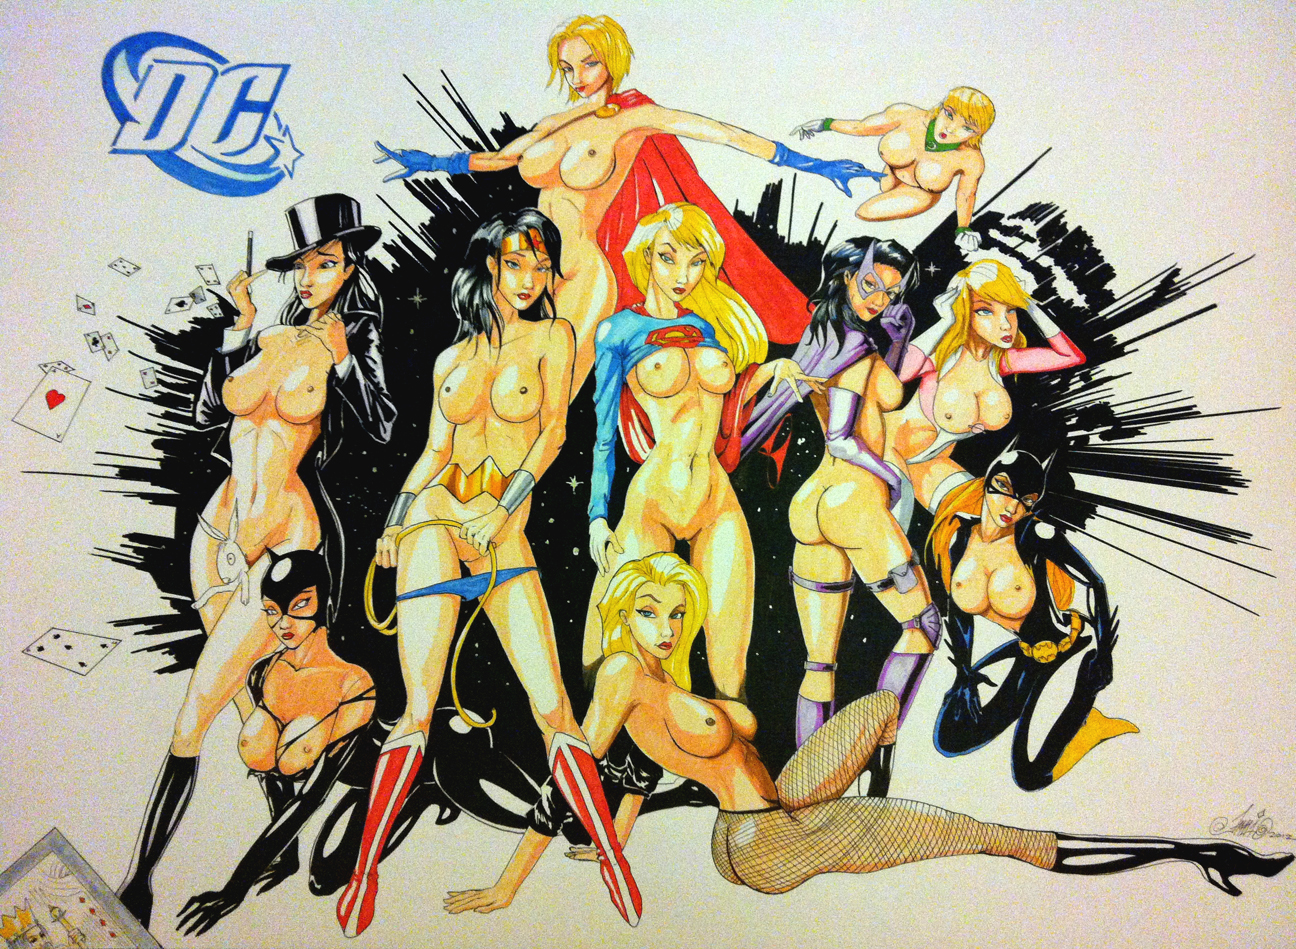 Dc universe versiГіn hentai erotic video